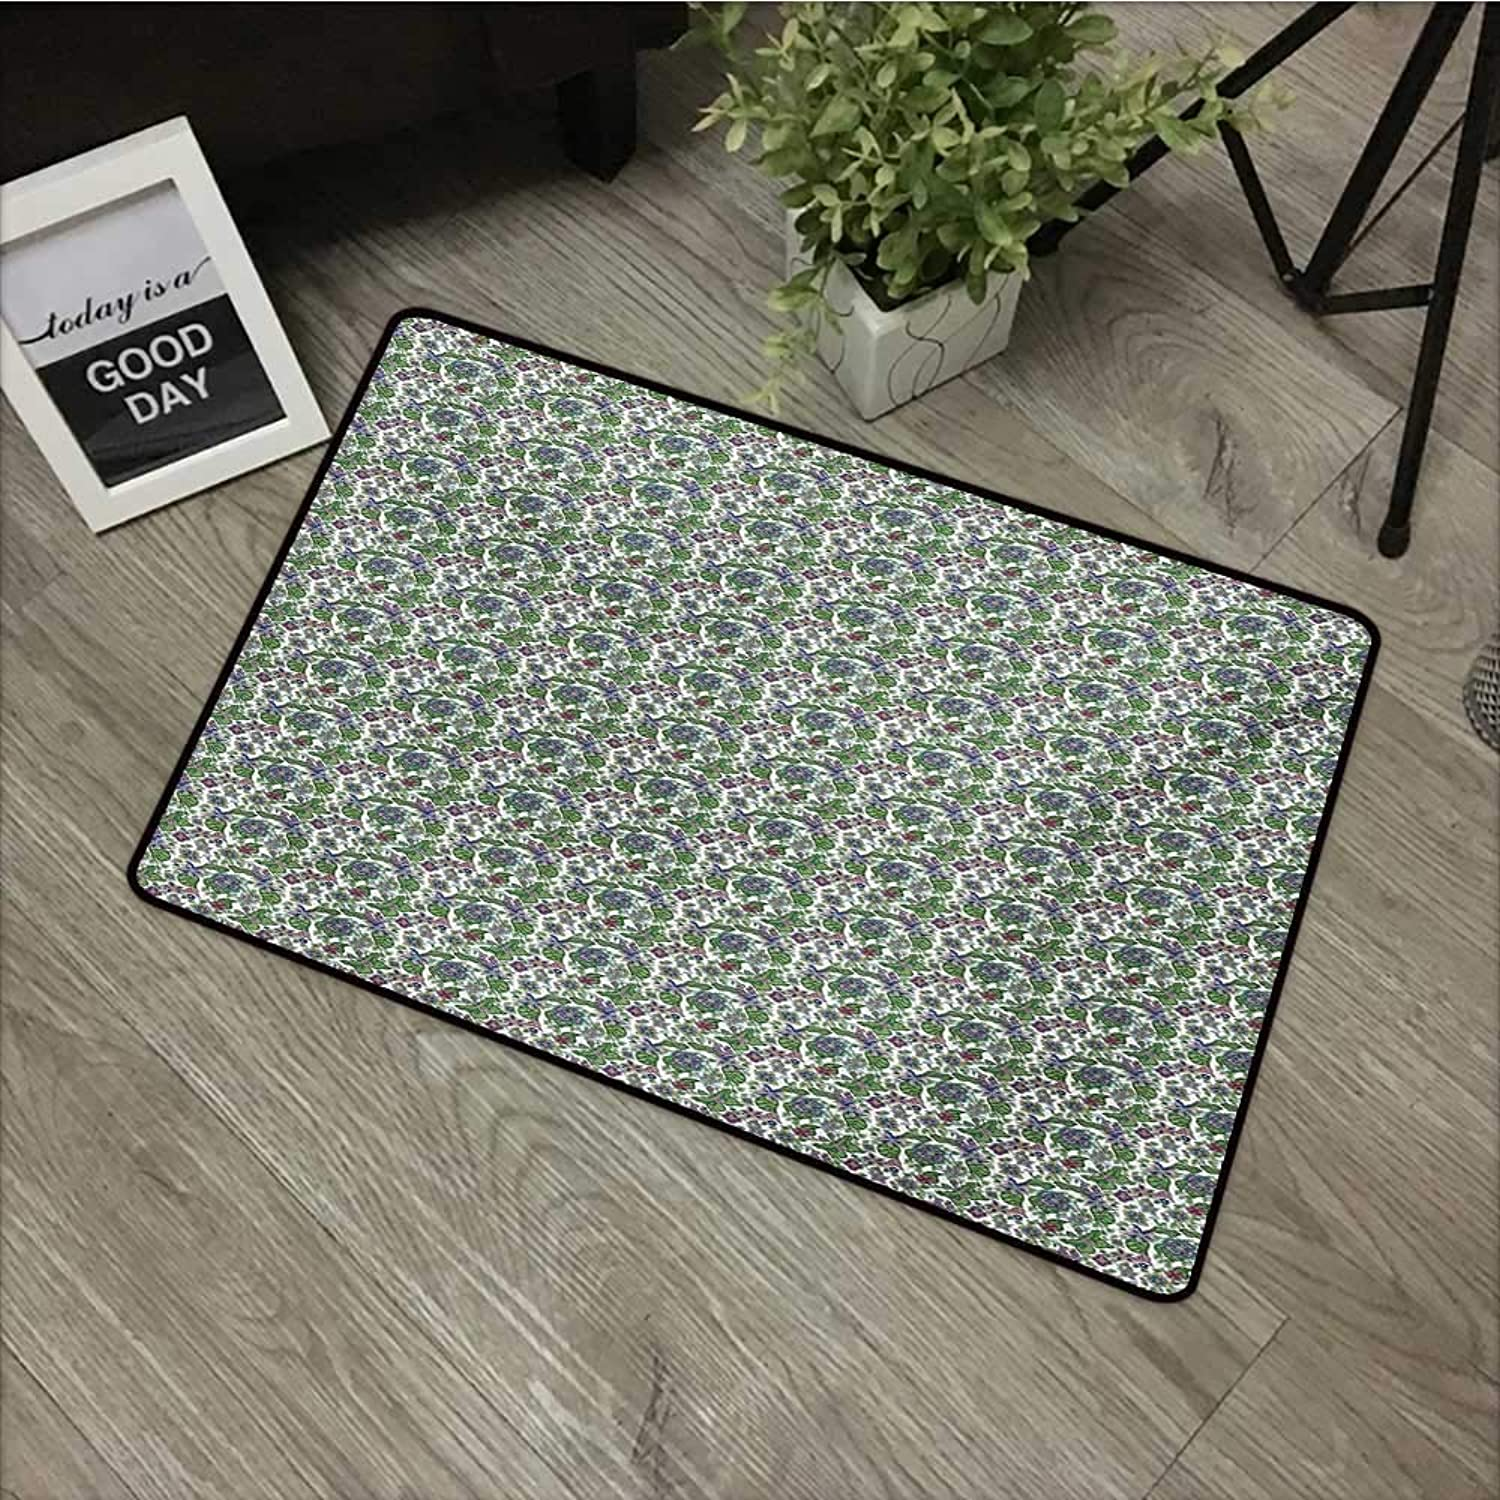 Interior Door mat W35 x L59 INCH Flower,Ornate Retro Style Artistic Blossoms in with Green Leaves Pattern,Multicolor Natural dye Printing to Predect Your Baby's Skin Non-Slip Door Mat